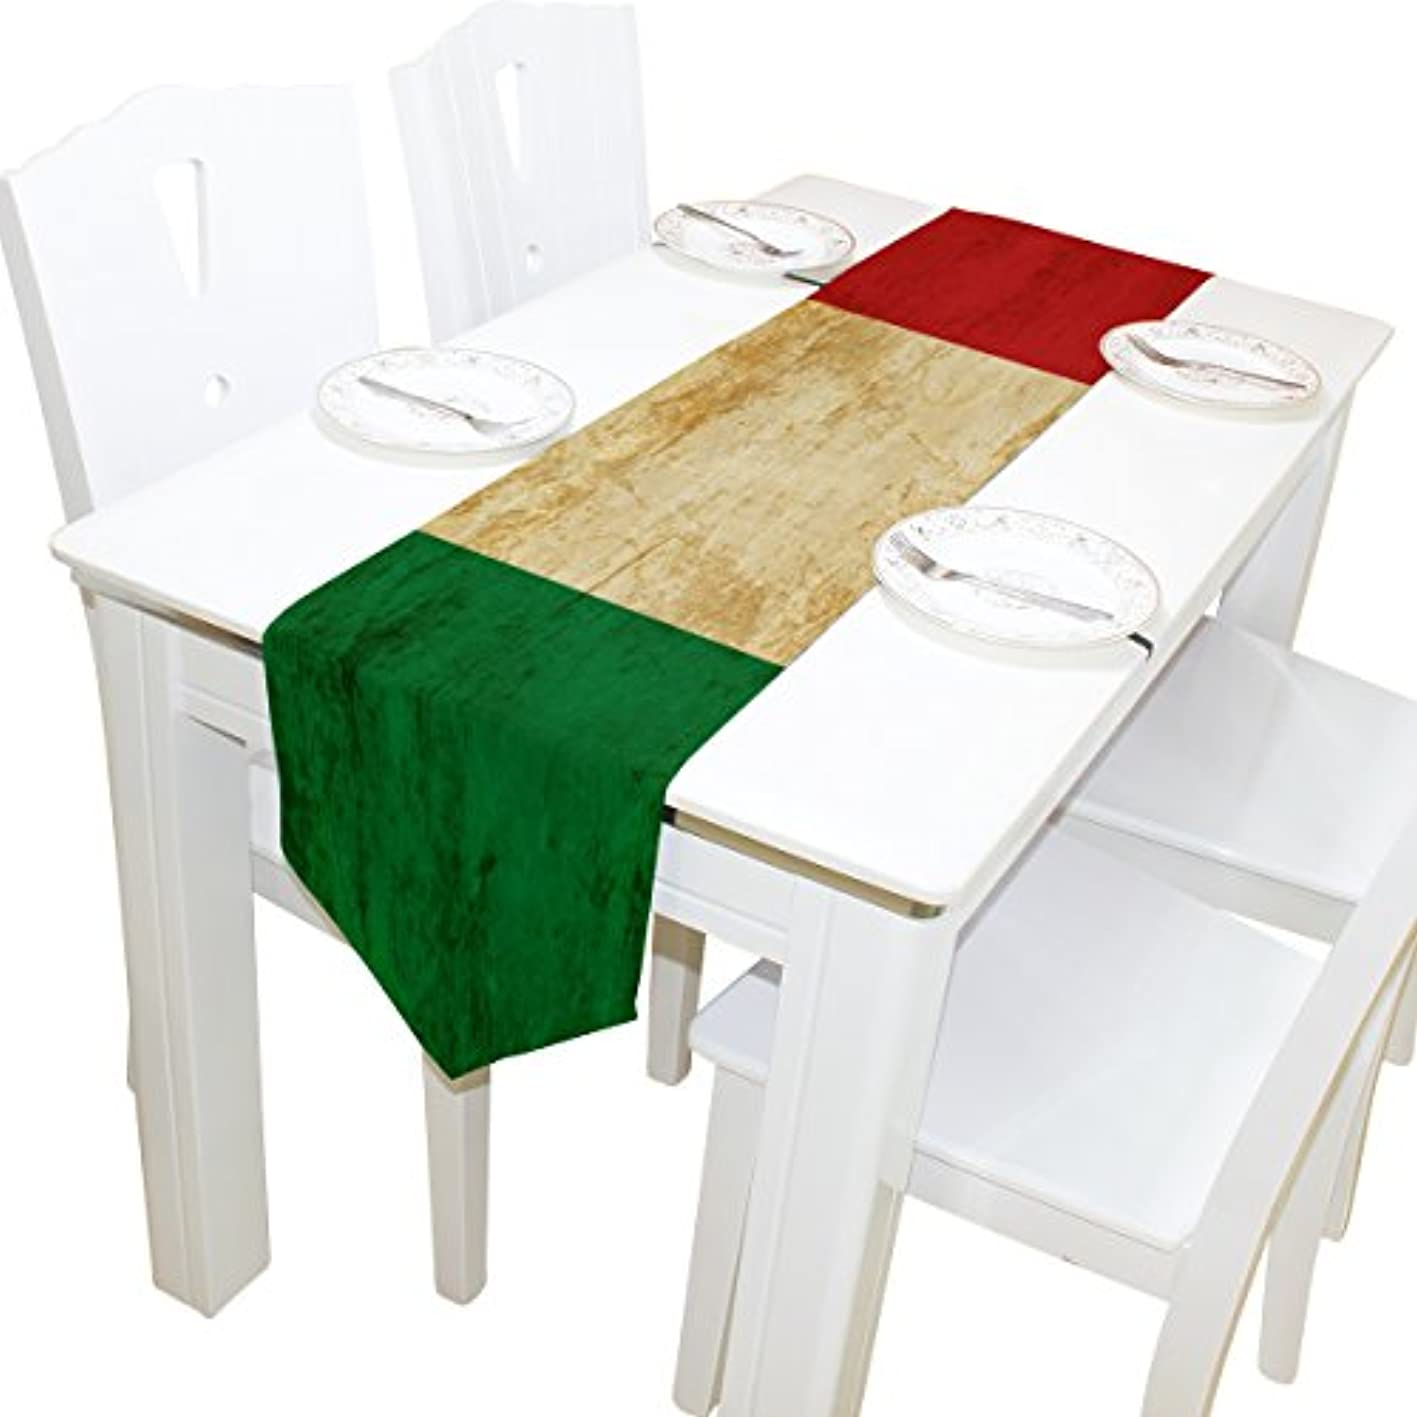 ALAZA Table Runner Home Decor, Vintage Italian Flag Table Cloth Runner Coffee Mat for Wedding Party Banquet Decoration 13 x 90 inches bxkjqtibqhn087